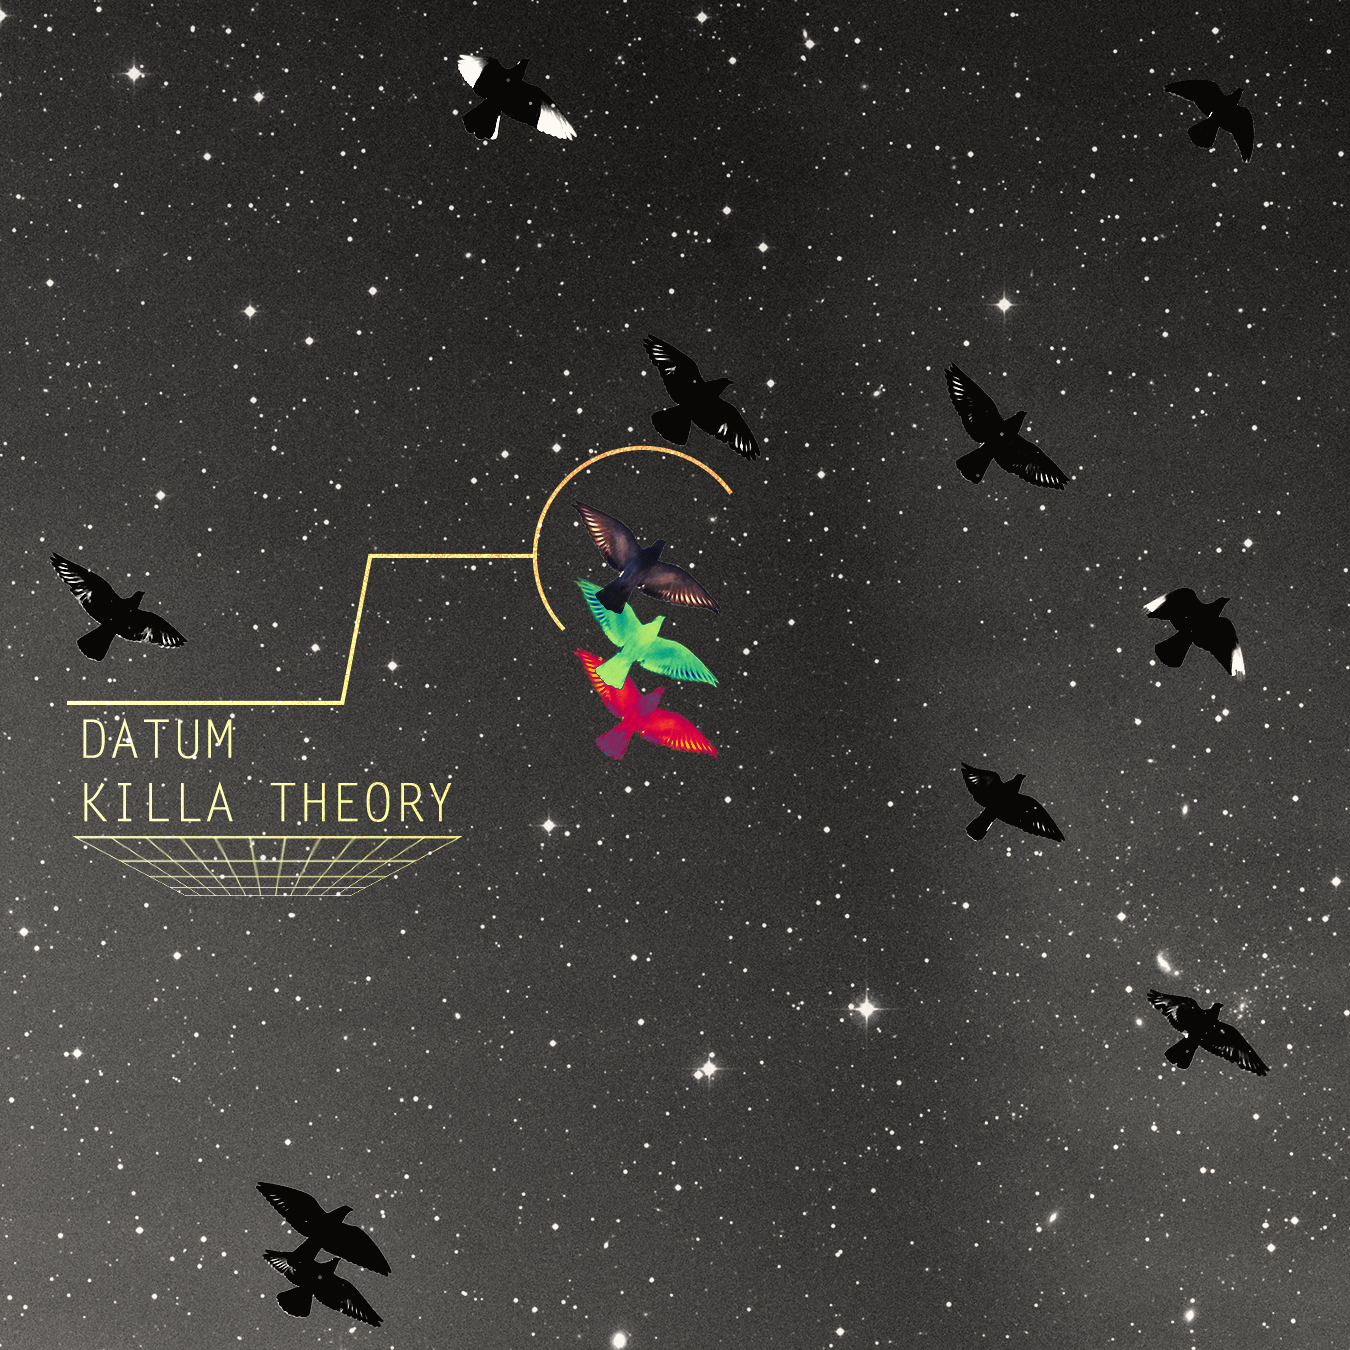 """July 22, 2014  Today,  Killa Theory  releases his first original tune in many months titled """"Datum."""" Killa Theory's """"Datum""""is an energetic, vibey, Chicago juke influenced track. With the use of spacey synths, entrancing vocals, and insane rhythms, Killa Theory takes you to another realm. This one is definitely one of Killa Theory's most intriguing songs to date.  Being released today courtesy of Brooklyn based label   T&A Records  . Well-known DJ, producer and part owner of T&A Records   Tittsworth  , is planning on the release of his own remix of """"Datum,"""" so be on the lookout for his version. Tittsworth has been on the EDM scene for many years and is highly respected in the game. That fact that he admires """"Datum""""enough to remix it says a lot.  Killa Theory's future continues to look even brighter with the release of another out of this world track. Enjoy """"Datum"""" below.  by Winston E. Brewington, Jr. ,  Earmilk  Contributor"""